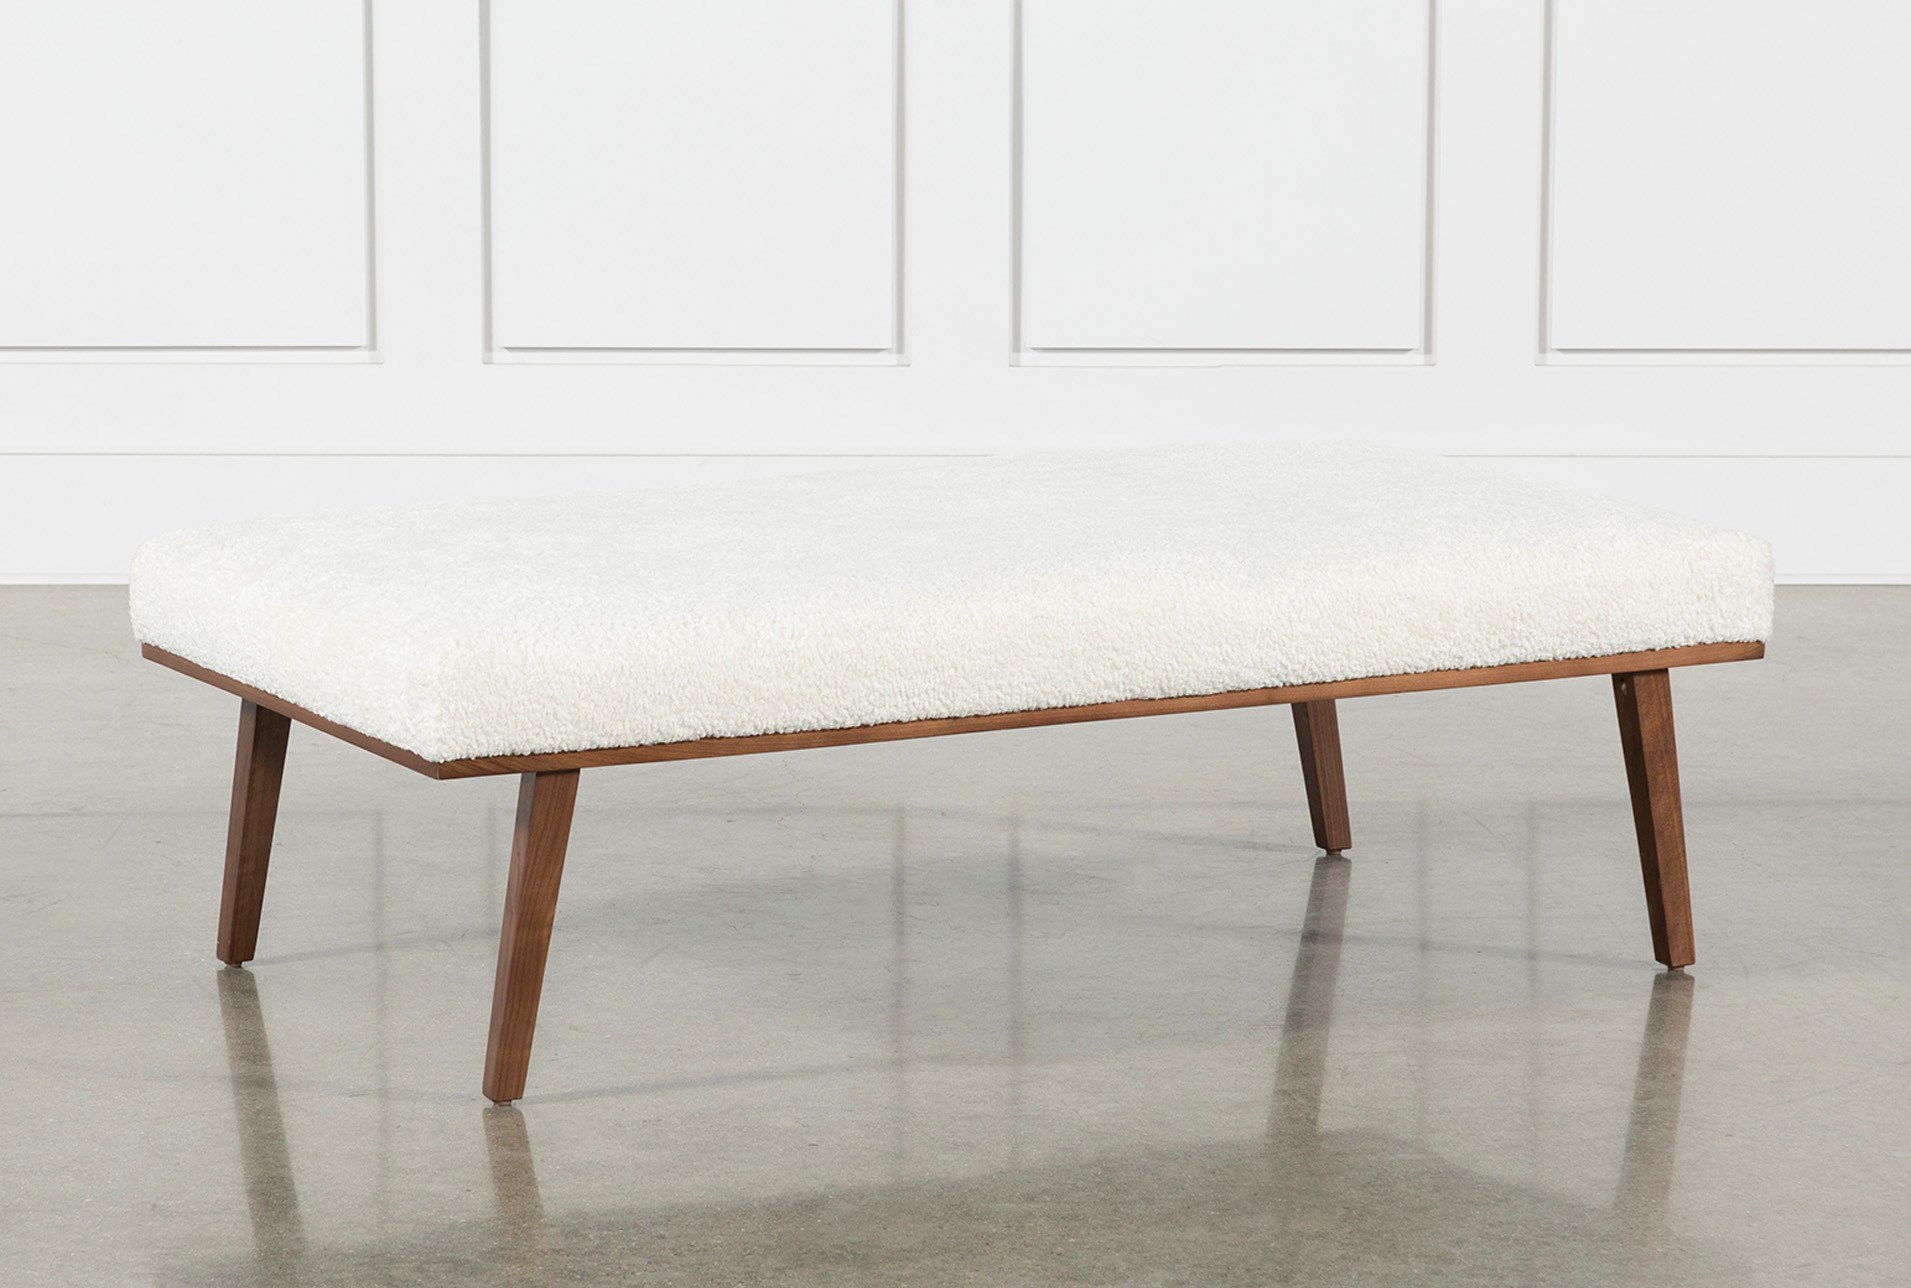 Chloe accent cocktail ottoman by nate berkus and jeremiah brent qty 1 has been successfully added to your cart